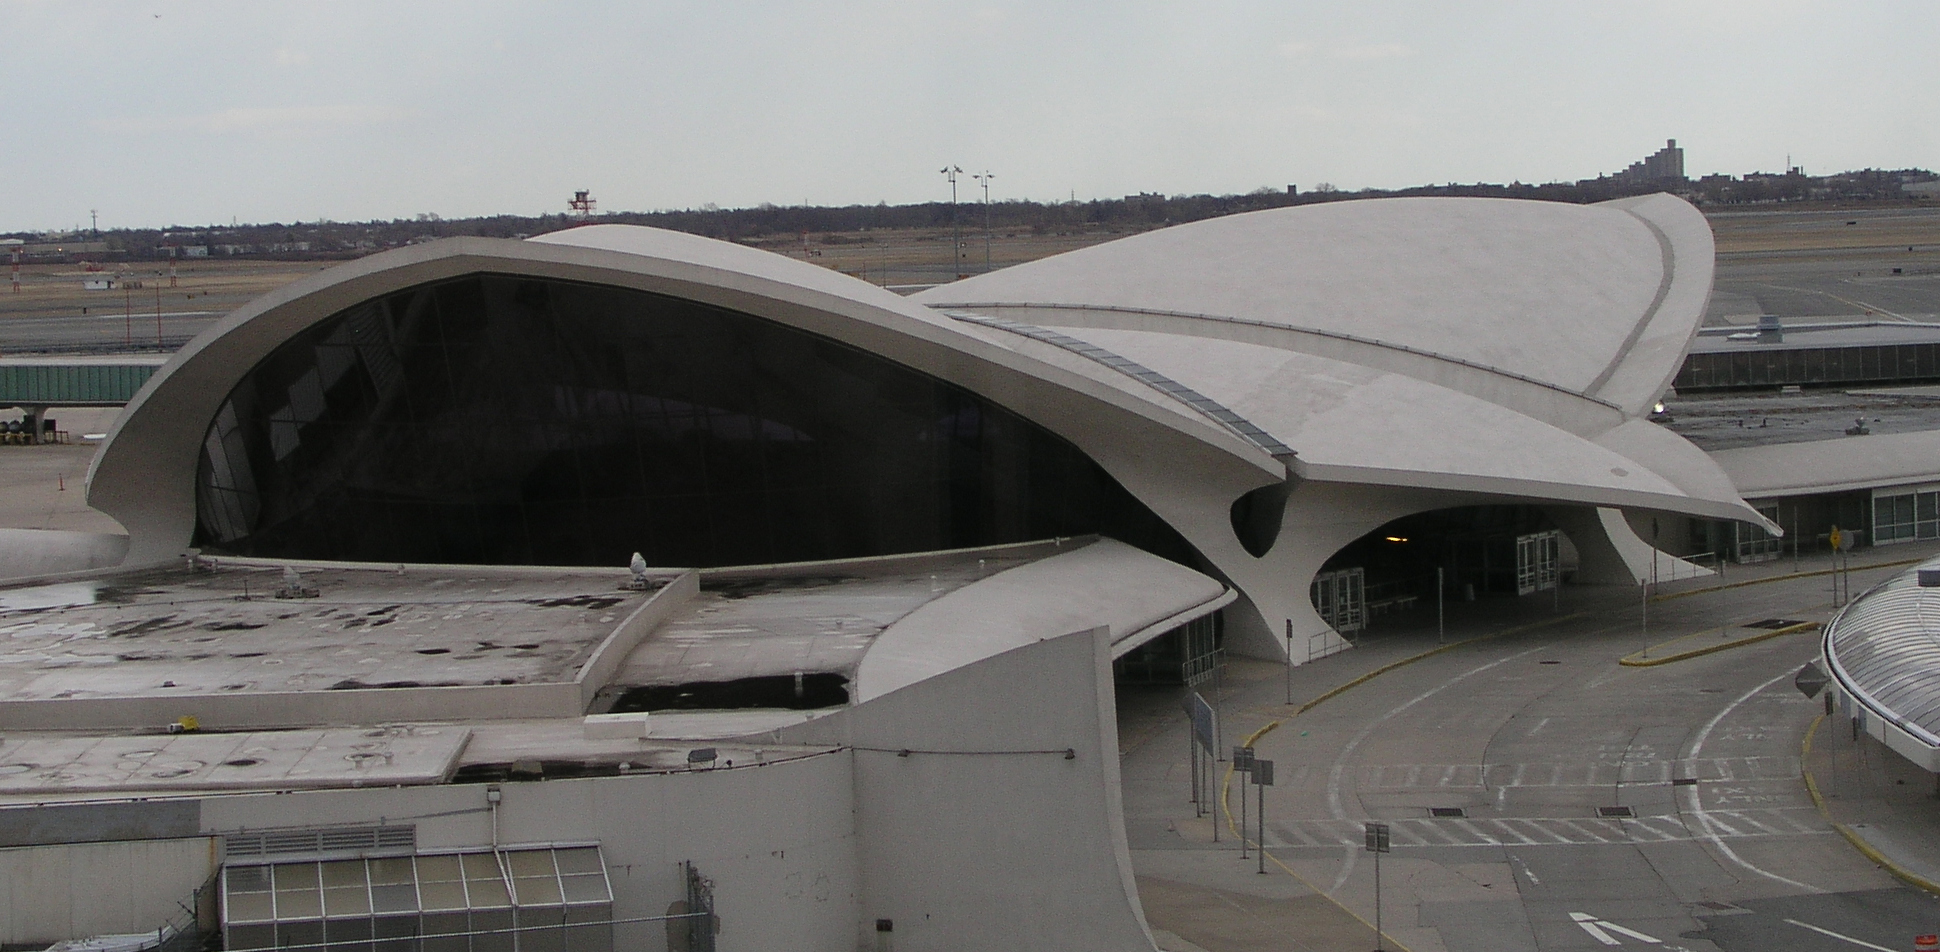 Designing And Building A Curved Roof Structures